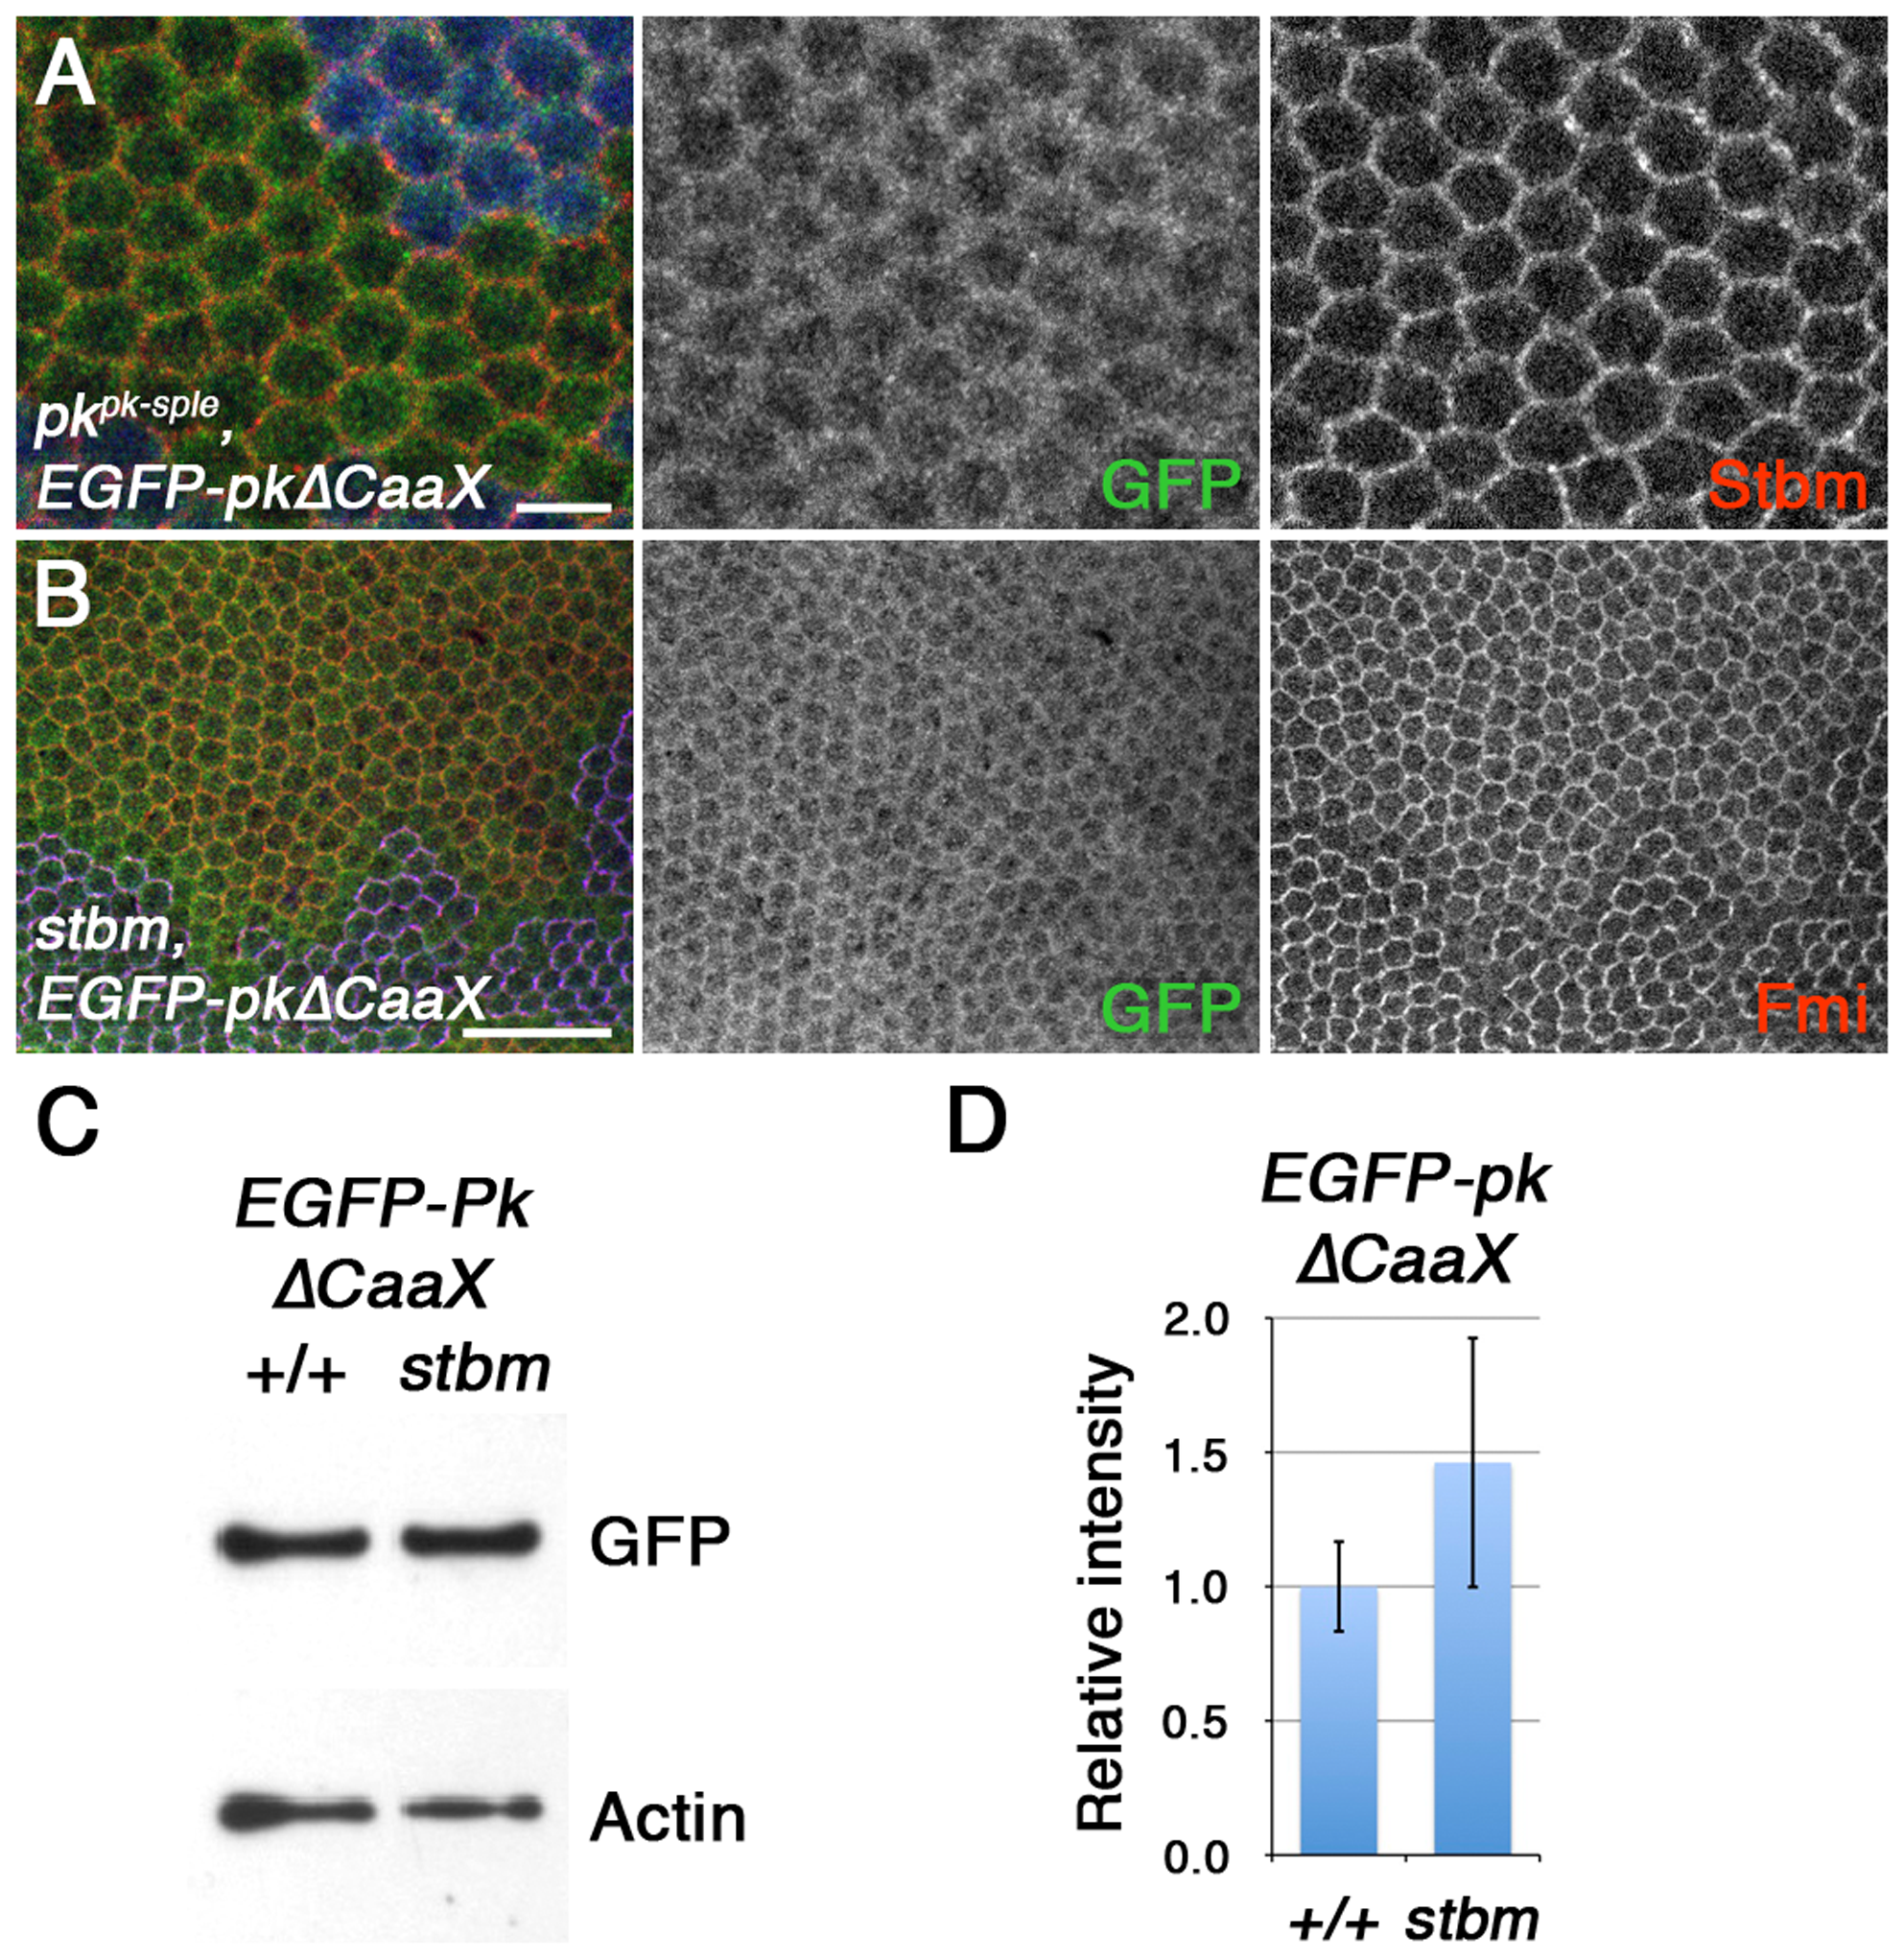 Farnesylation is required for Stbm to promote Pk recruitment to junctions and Pk degradation.